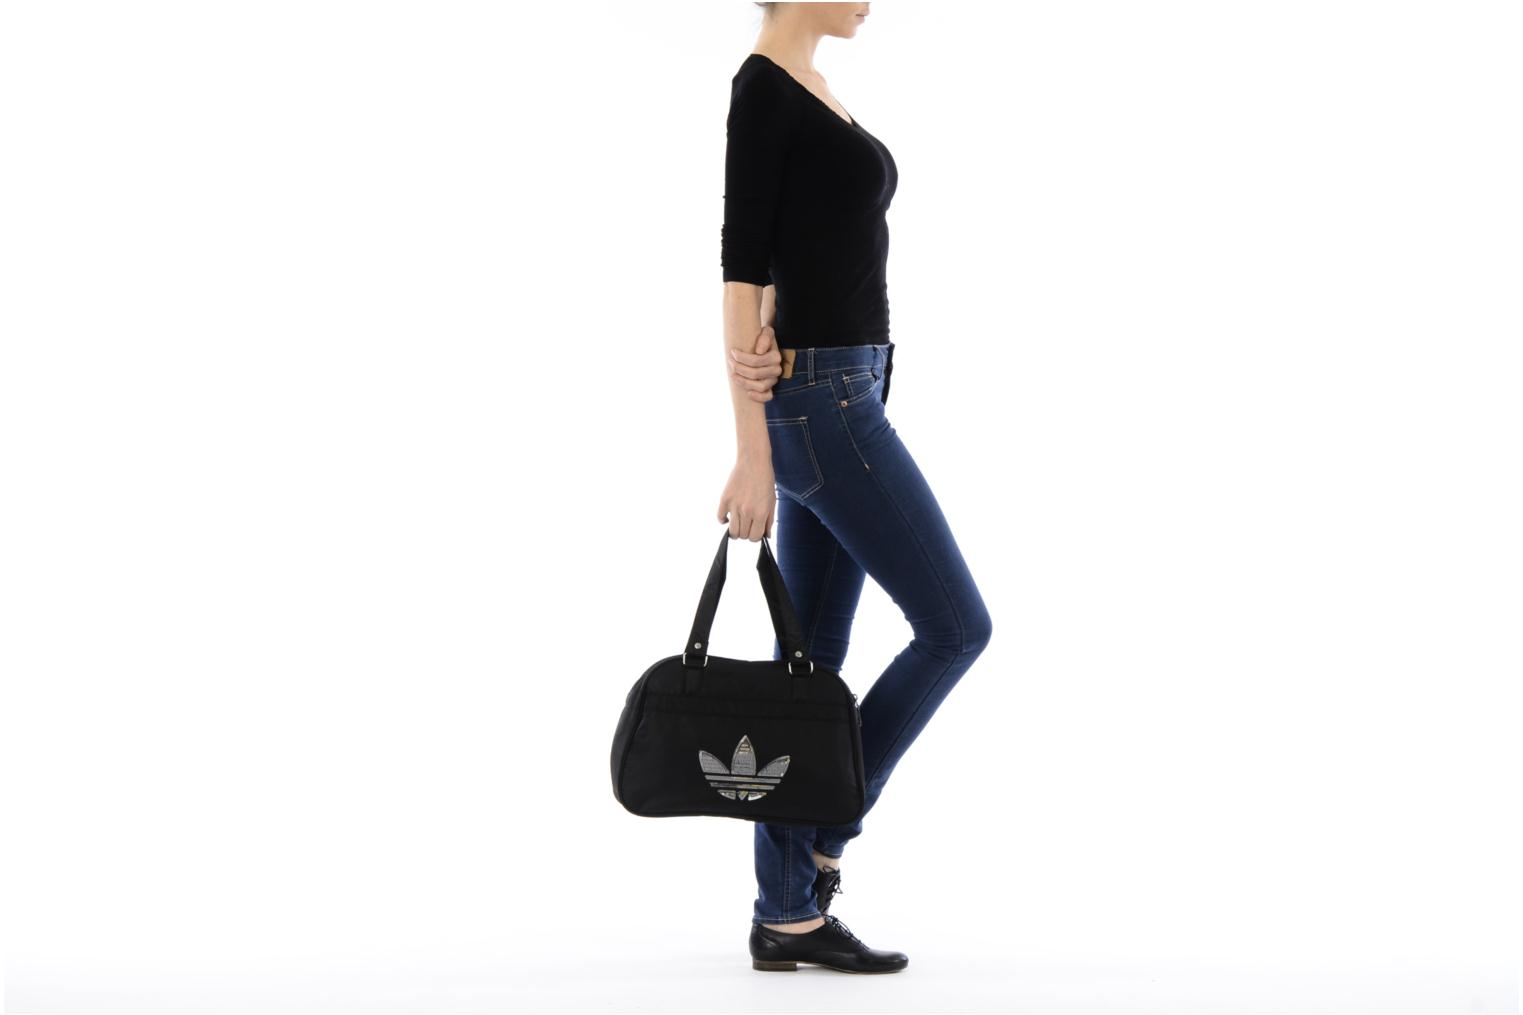 Sports bags Adidas Originals WMN SY BOWLING BAG Black view from above